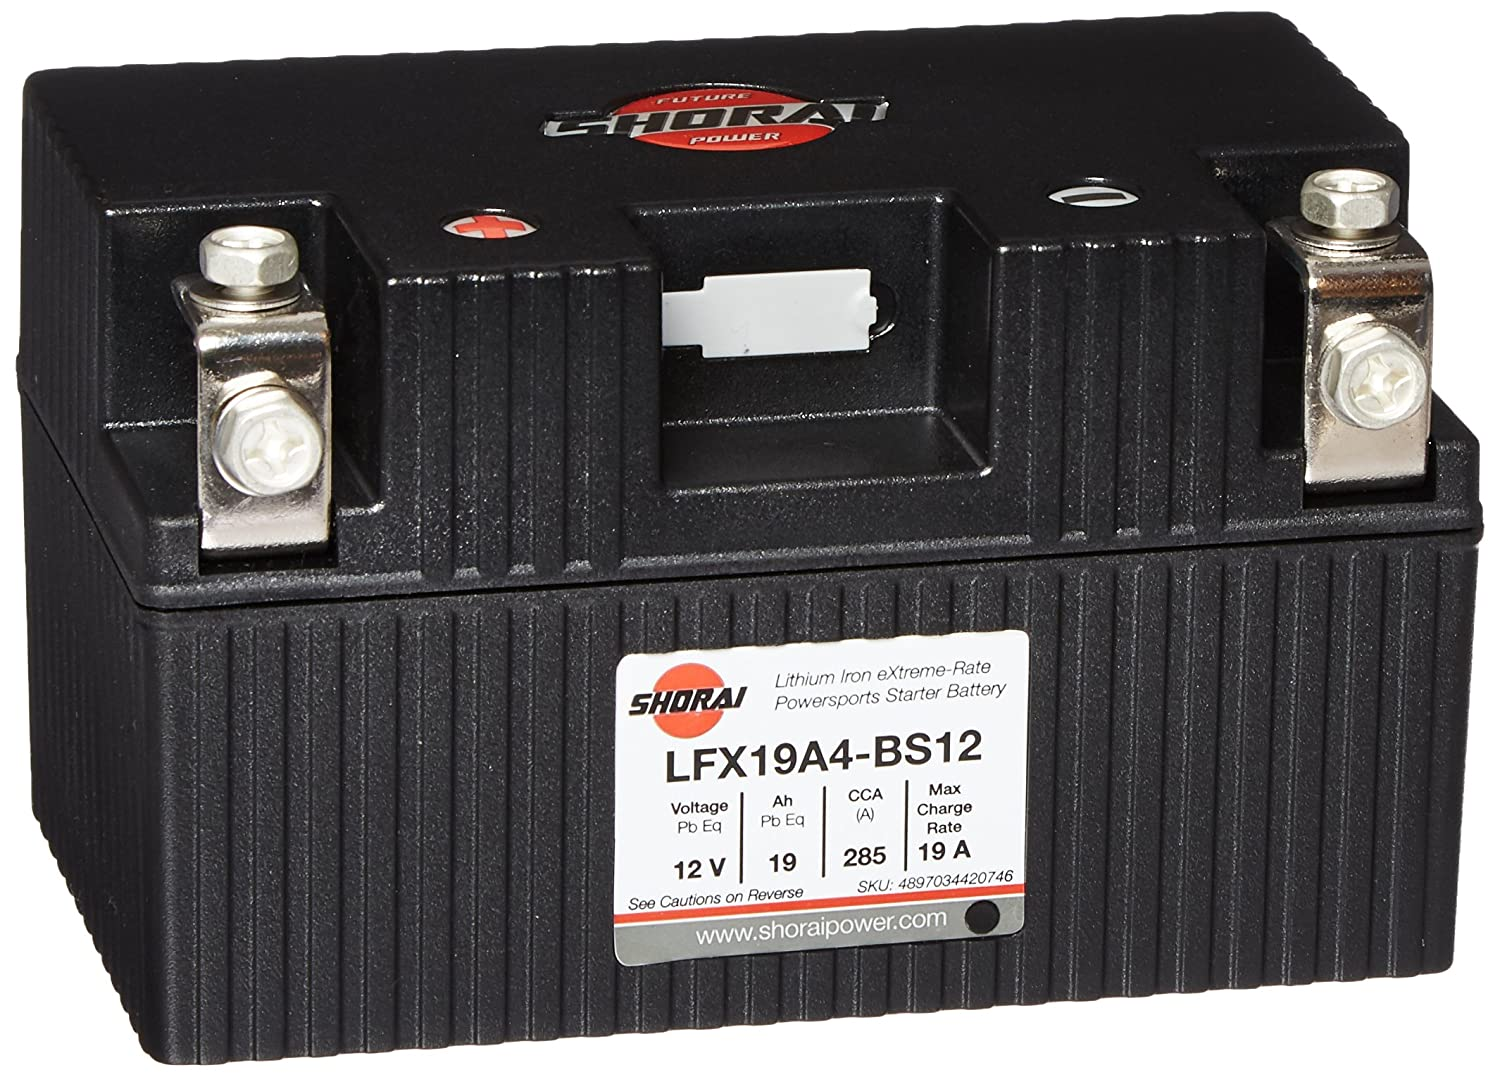 Shorai Lithium-Iron Extreme-Rate Battery LFX19A4-BS12